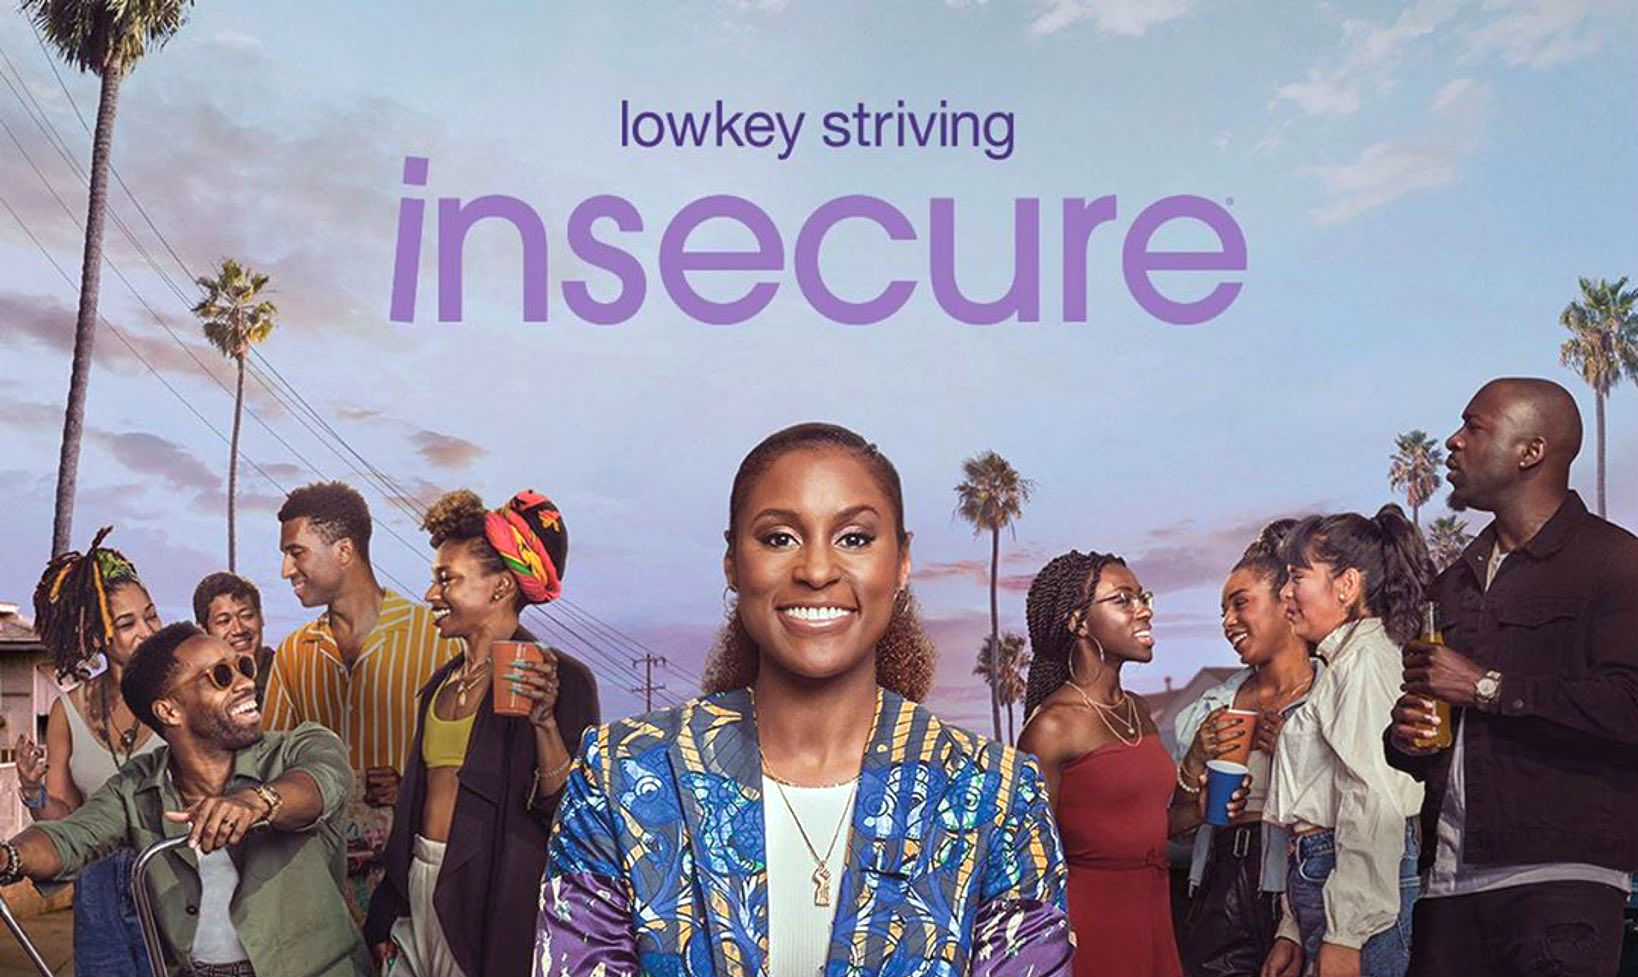 Insecure Season 4 Episode 9: update, Plot, Cast and All You Need To Know